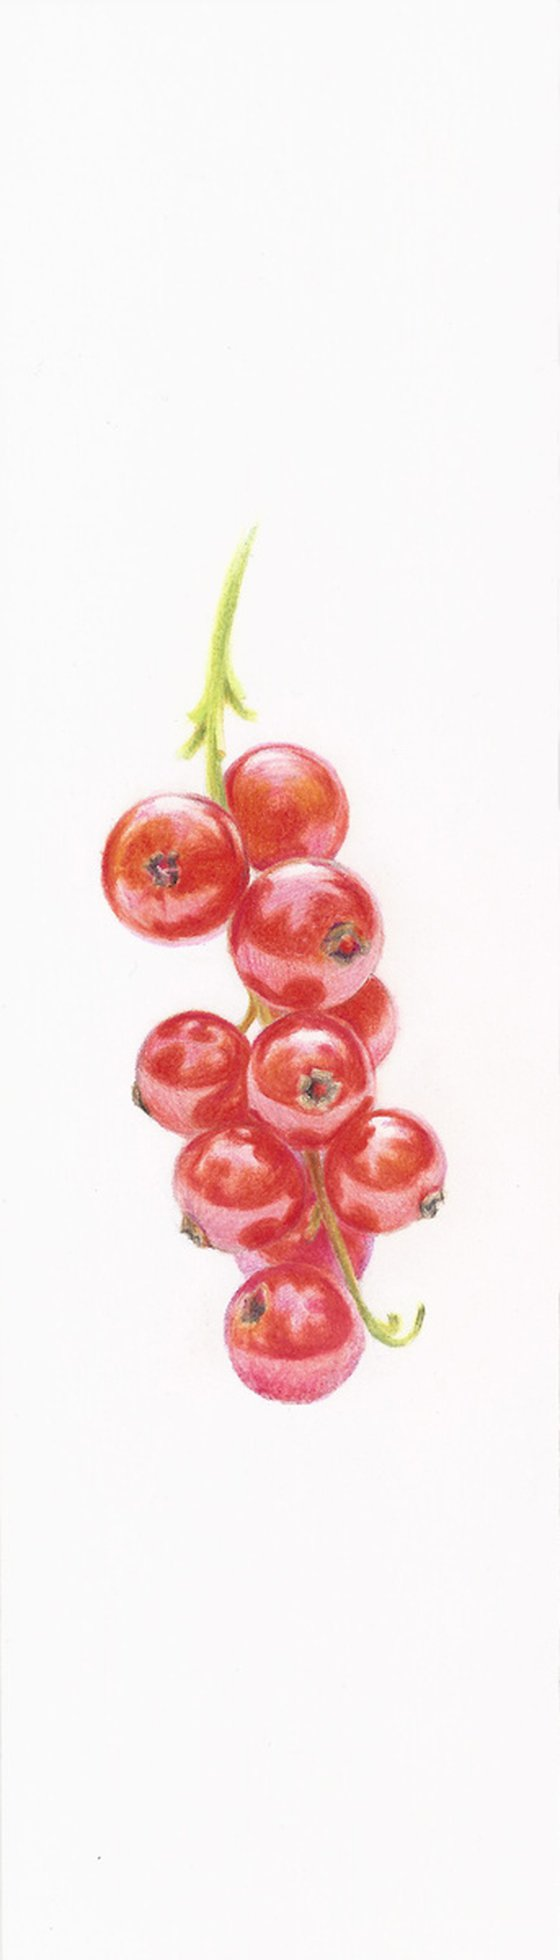 My Wild Berries as Bookmarks - The Red Currant